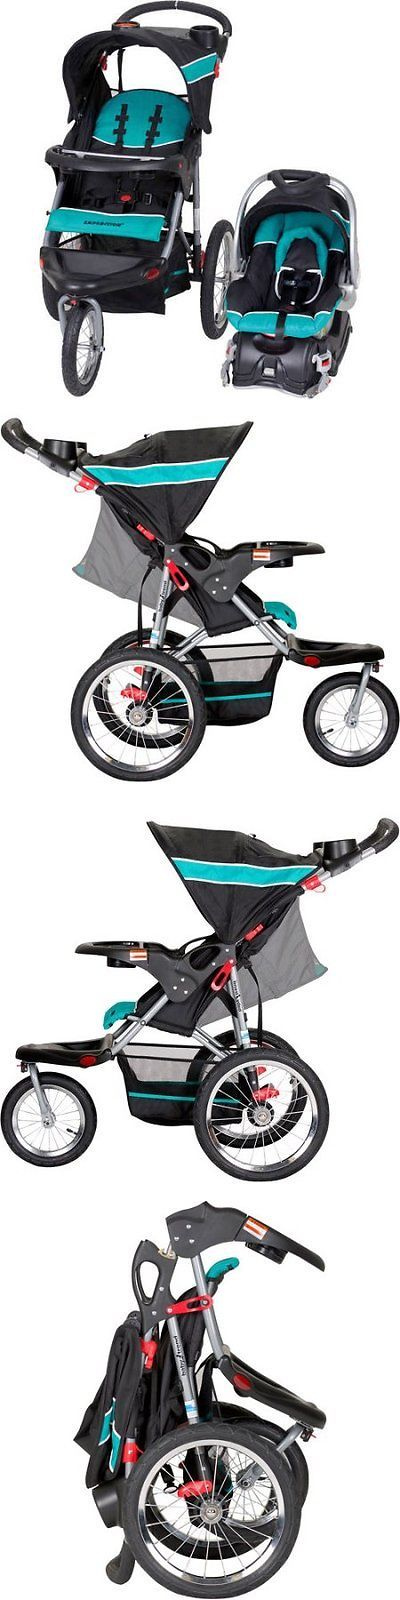 Baby: Baby Trend Expedition Jogger Travel System 3In1 Stroller Car Seat Electric Lime -> BUY IT NOW ONLY: $197.6 on eBay!